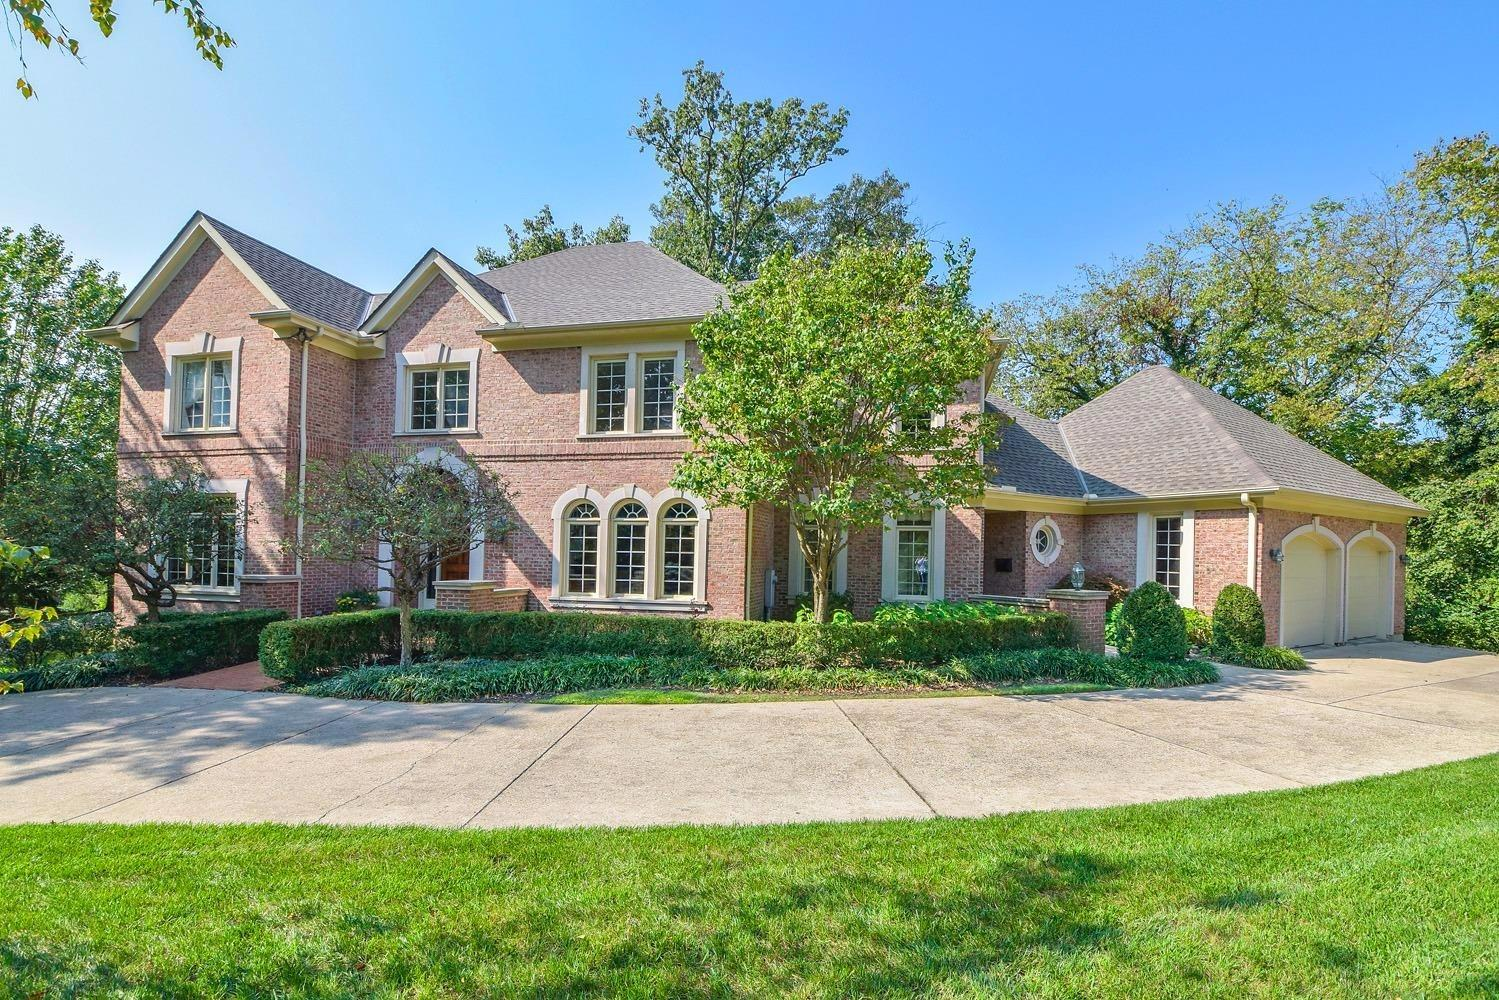 3761 Vineyard Pl Mt. Lookout, OH